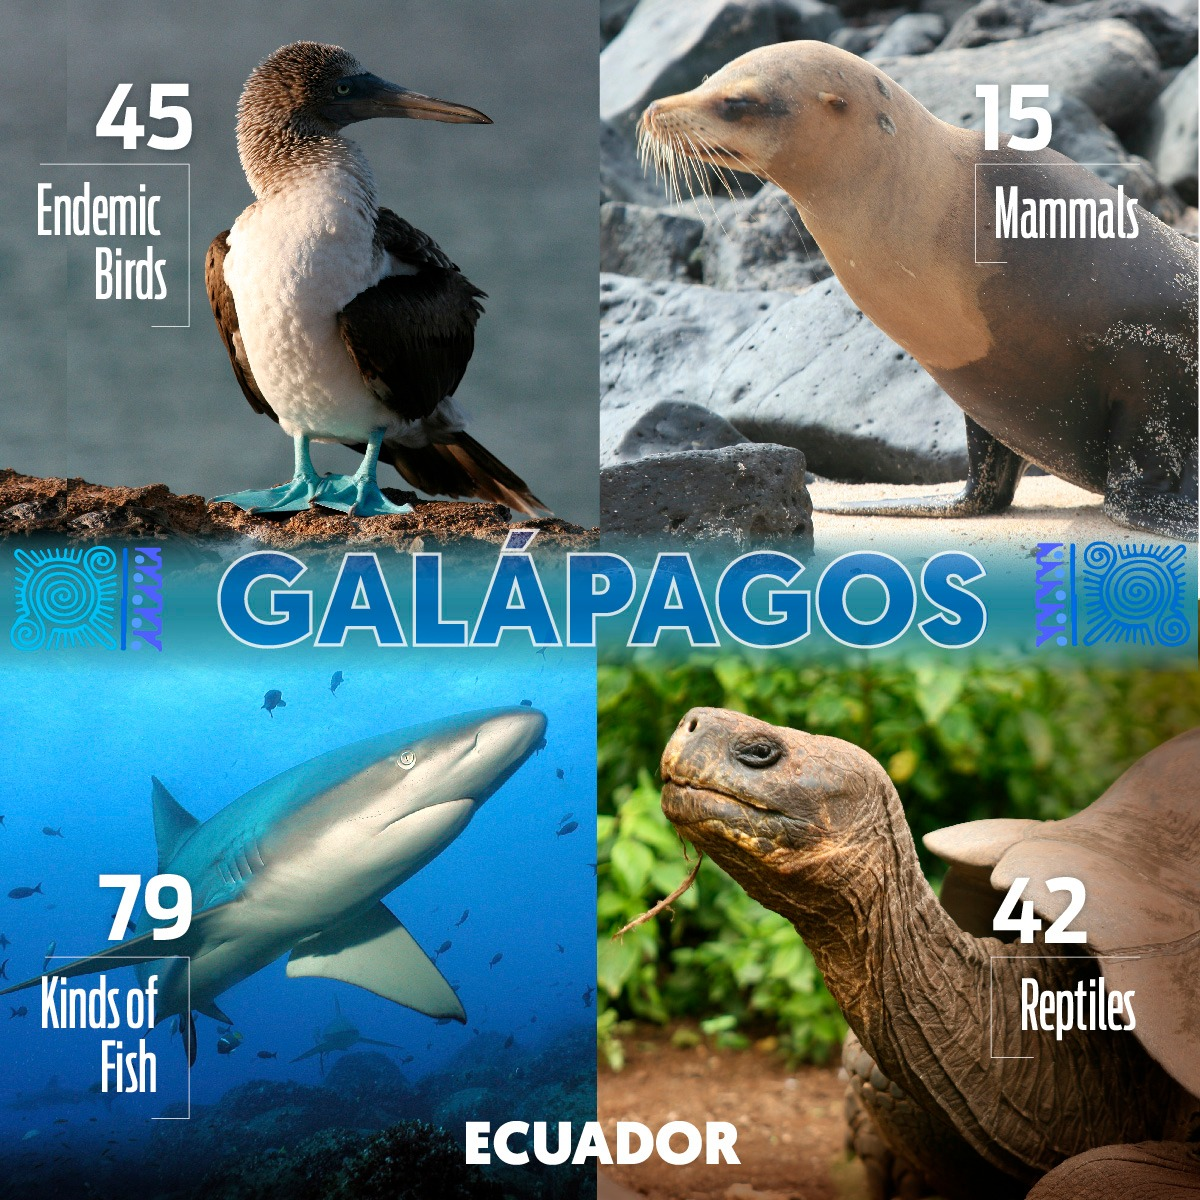 On the International Tourism Day we celebrate all the biodiversity we found in the Galapagos Islands! We are ready to give you the best life experience in Darwin's evolution cradle. #VisitEcuador #WorldHeritage #Beach https://t.co/tkN4c9ZkJV